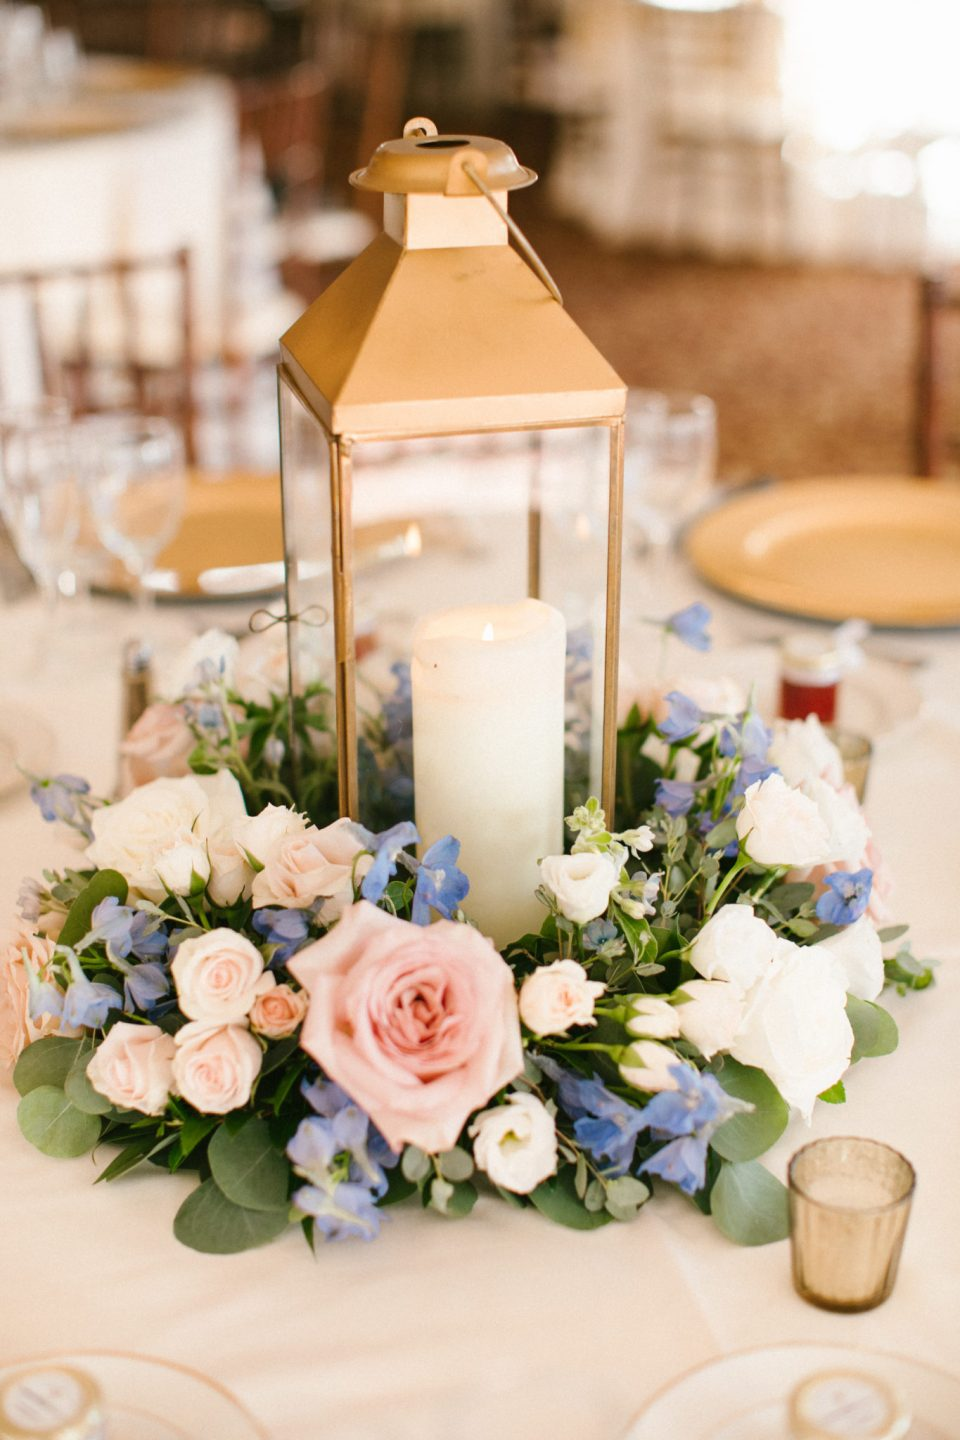 rustic lantern centerpieces by Whisper and Brook Florals photographed by Ashley Mac Photographs